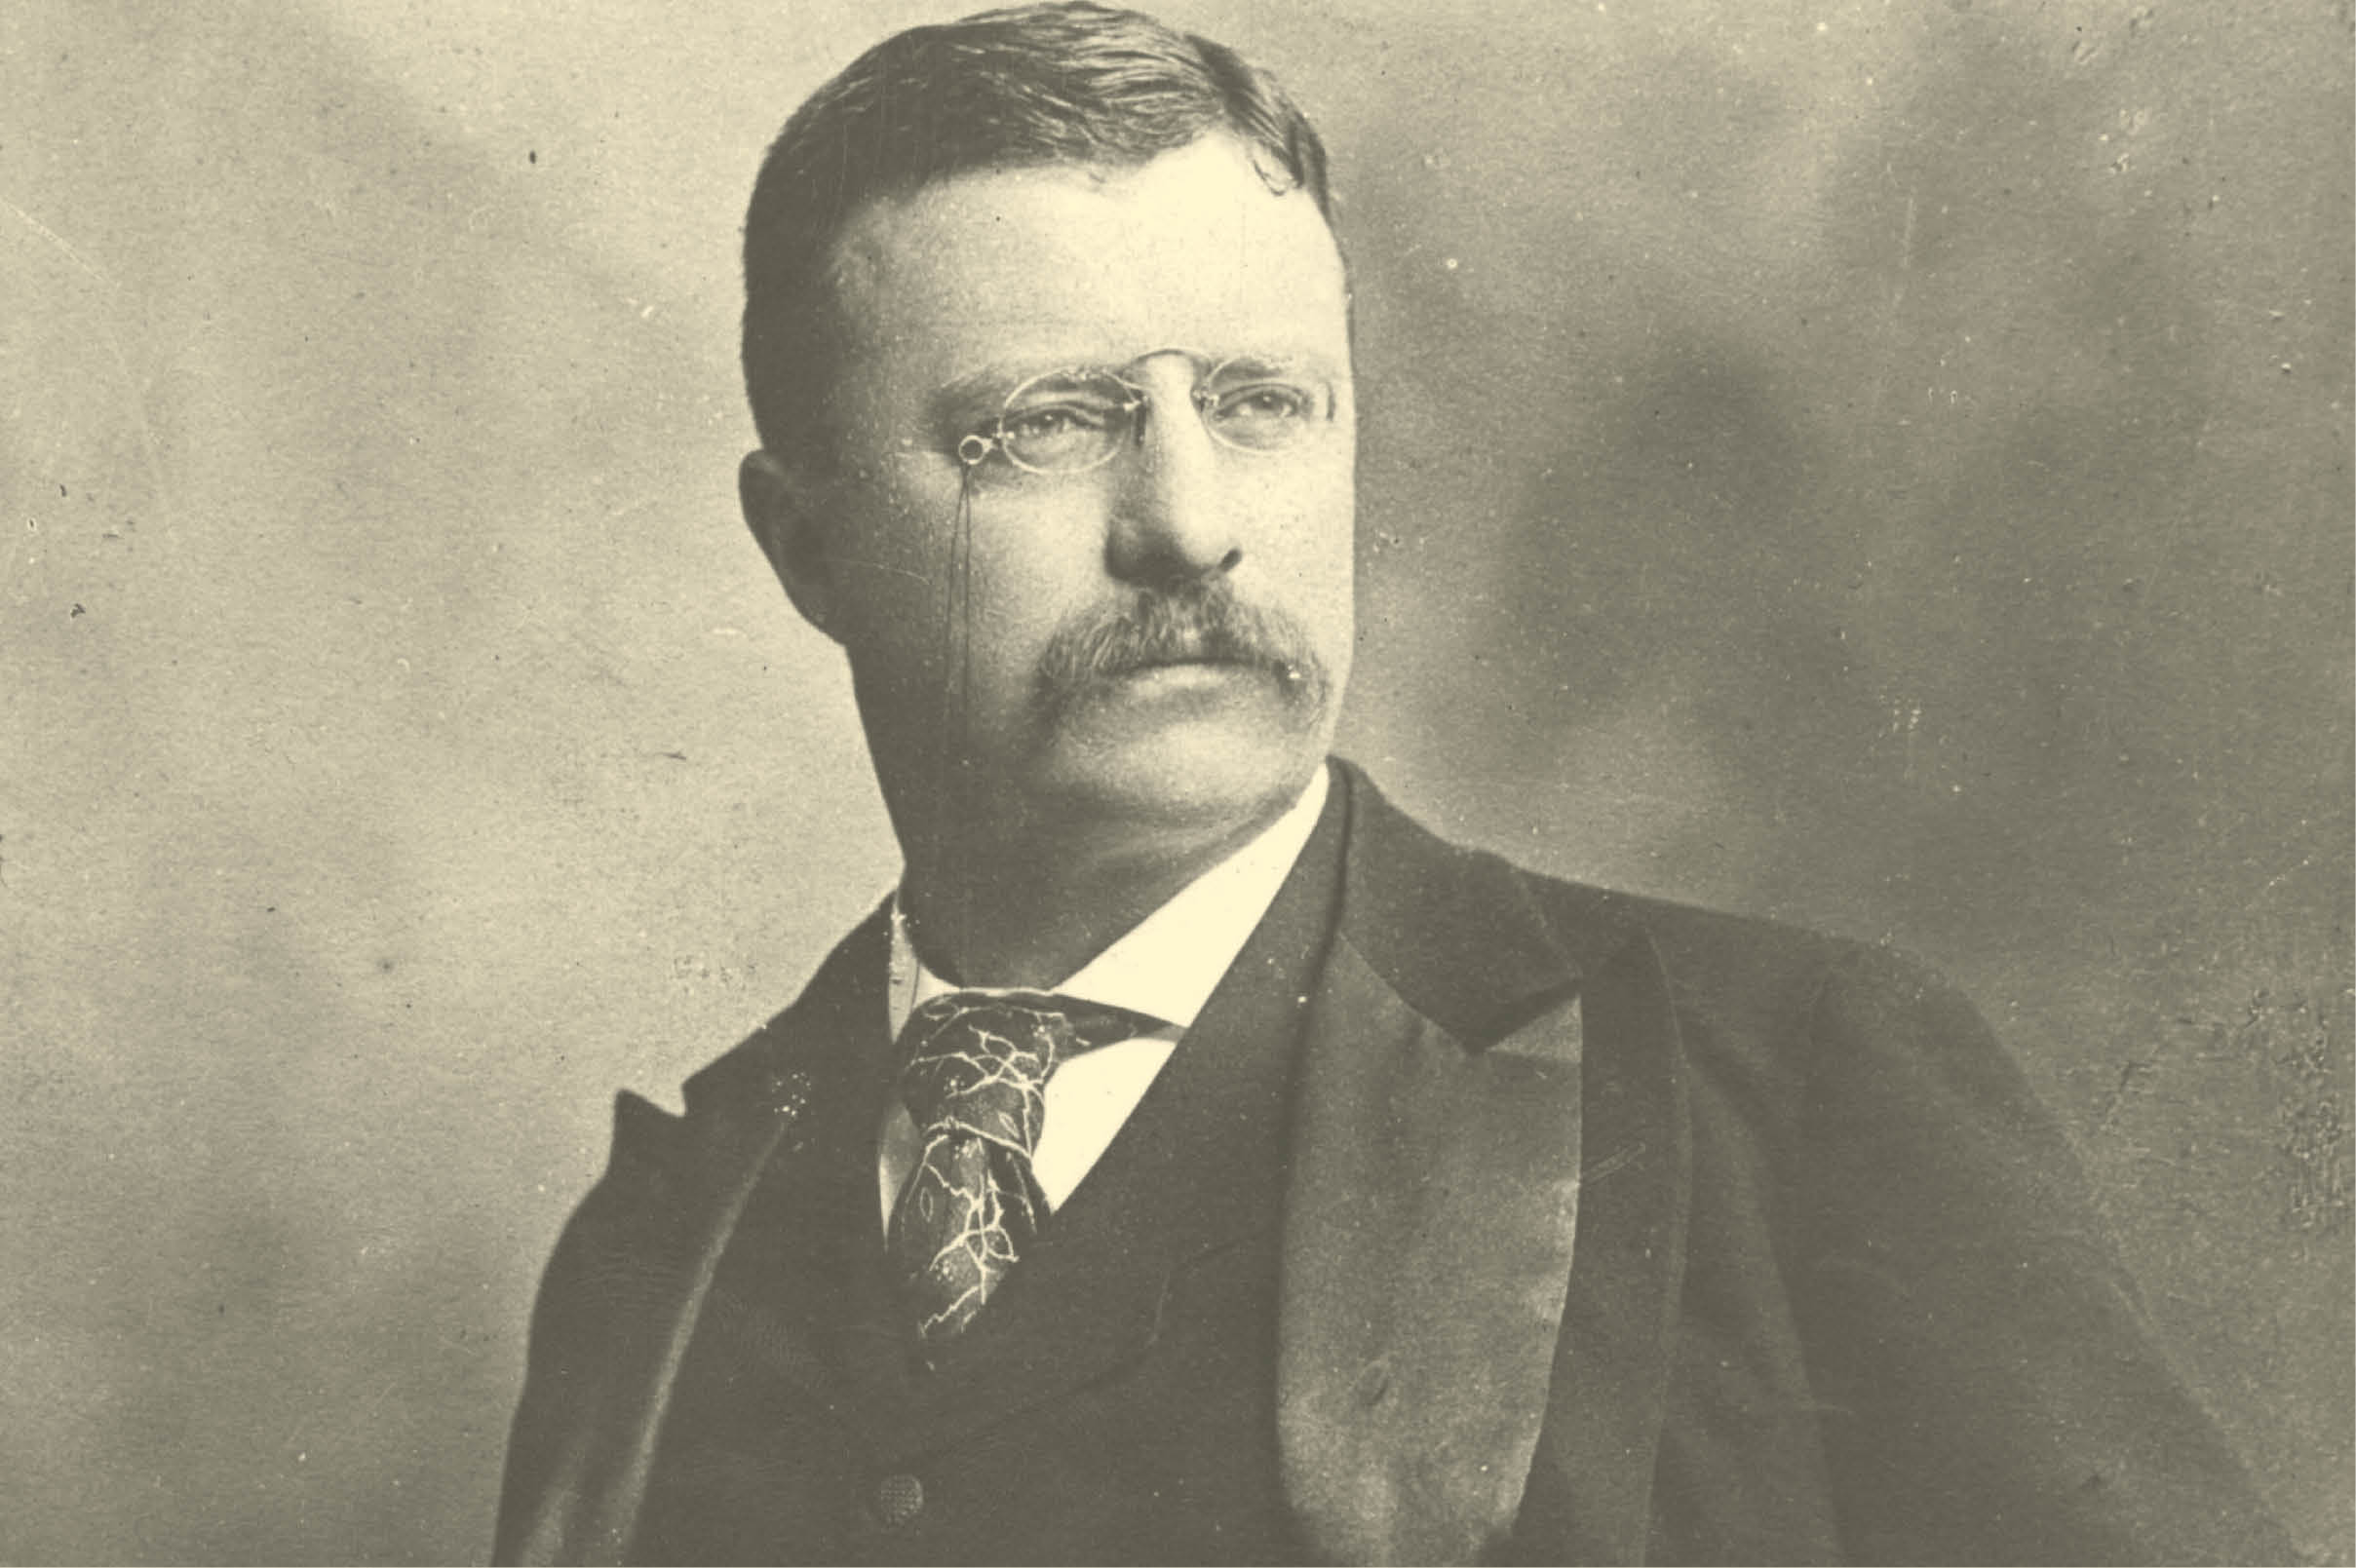 roosevelt 1908 in Pop Culture, AKA The Last Time the Chicago Cubs Won a World Series Title